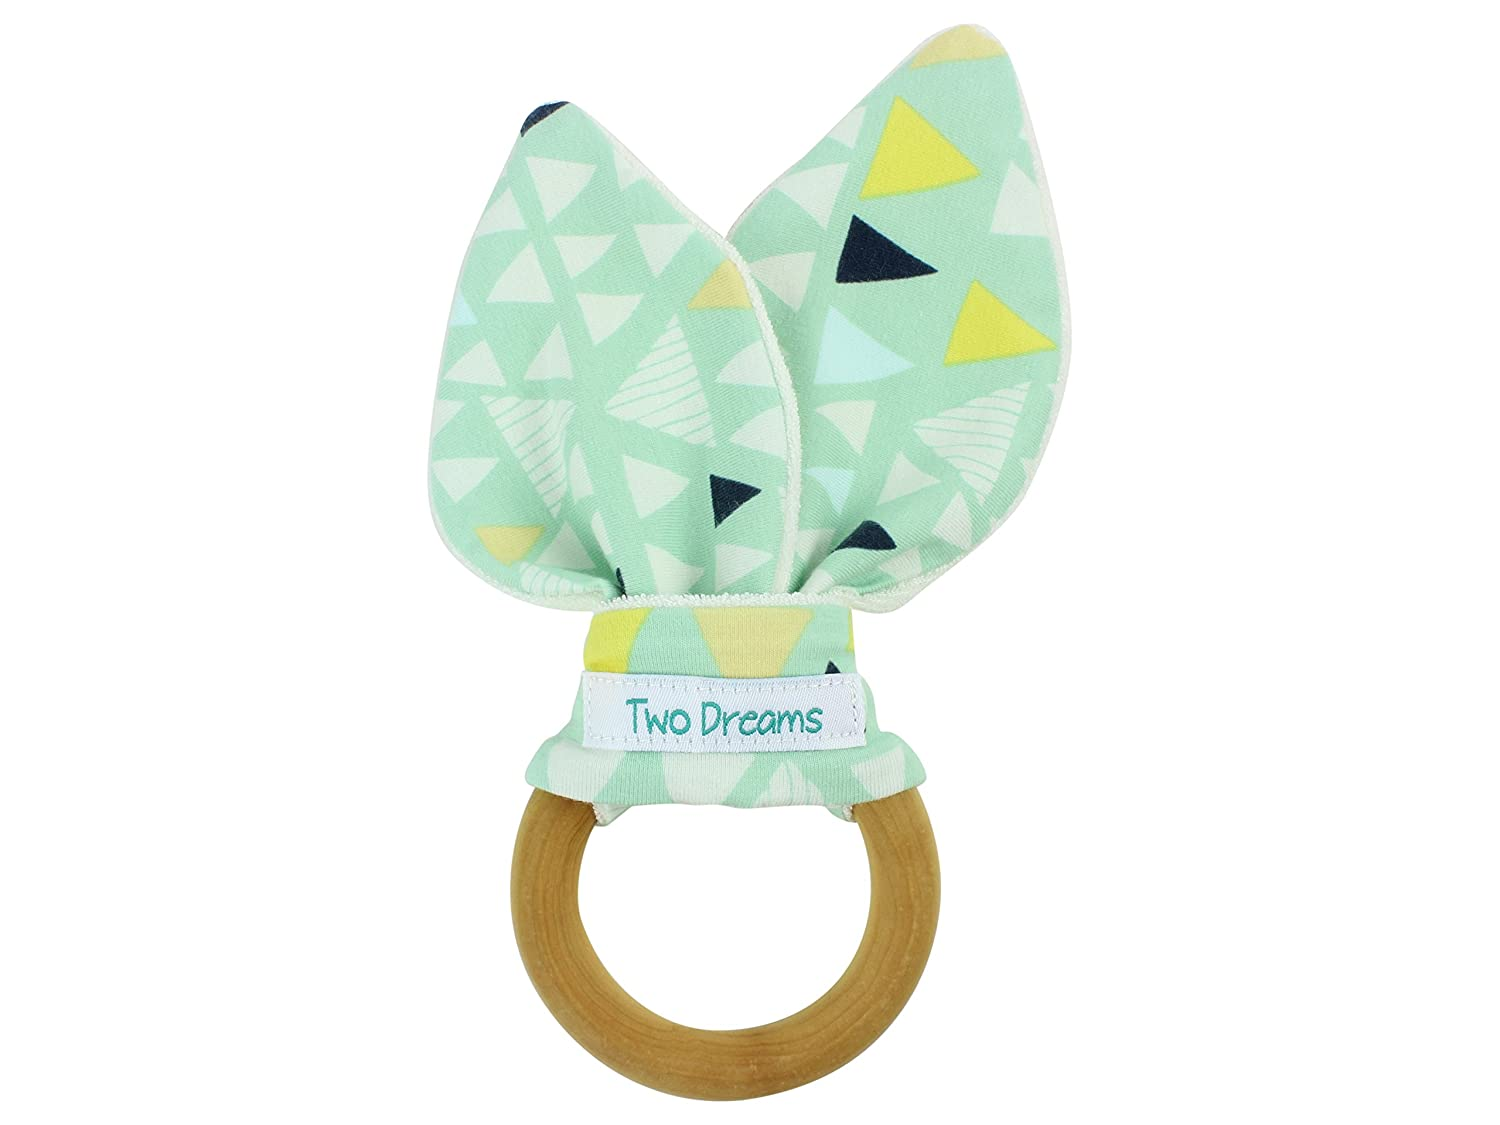 Mint Triangle Natural Organic Wooden Teether Bamboo Organic Terry Cloth Ring Toy Natural Maple Teething Ring